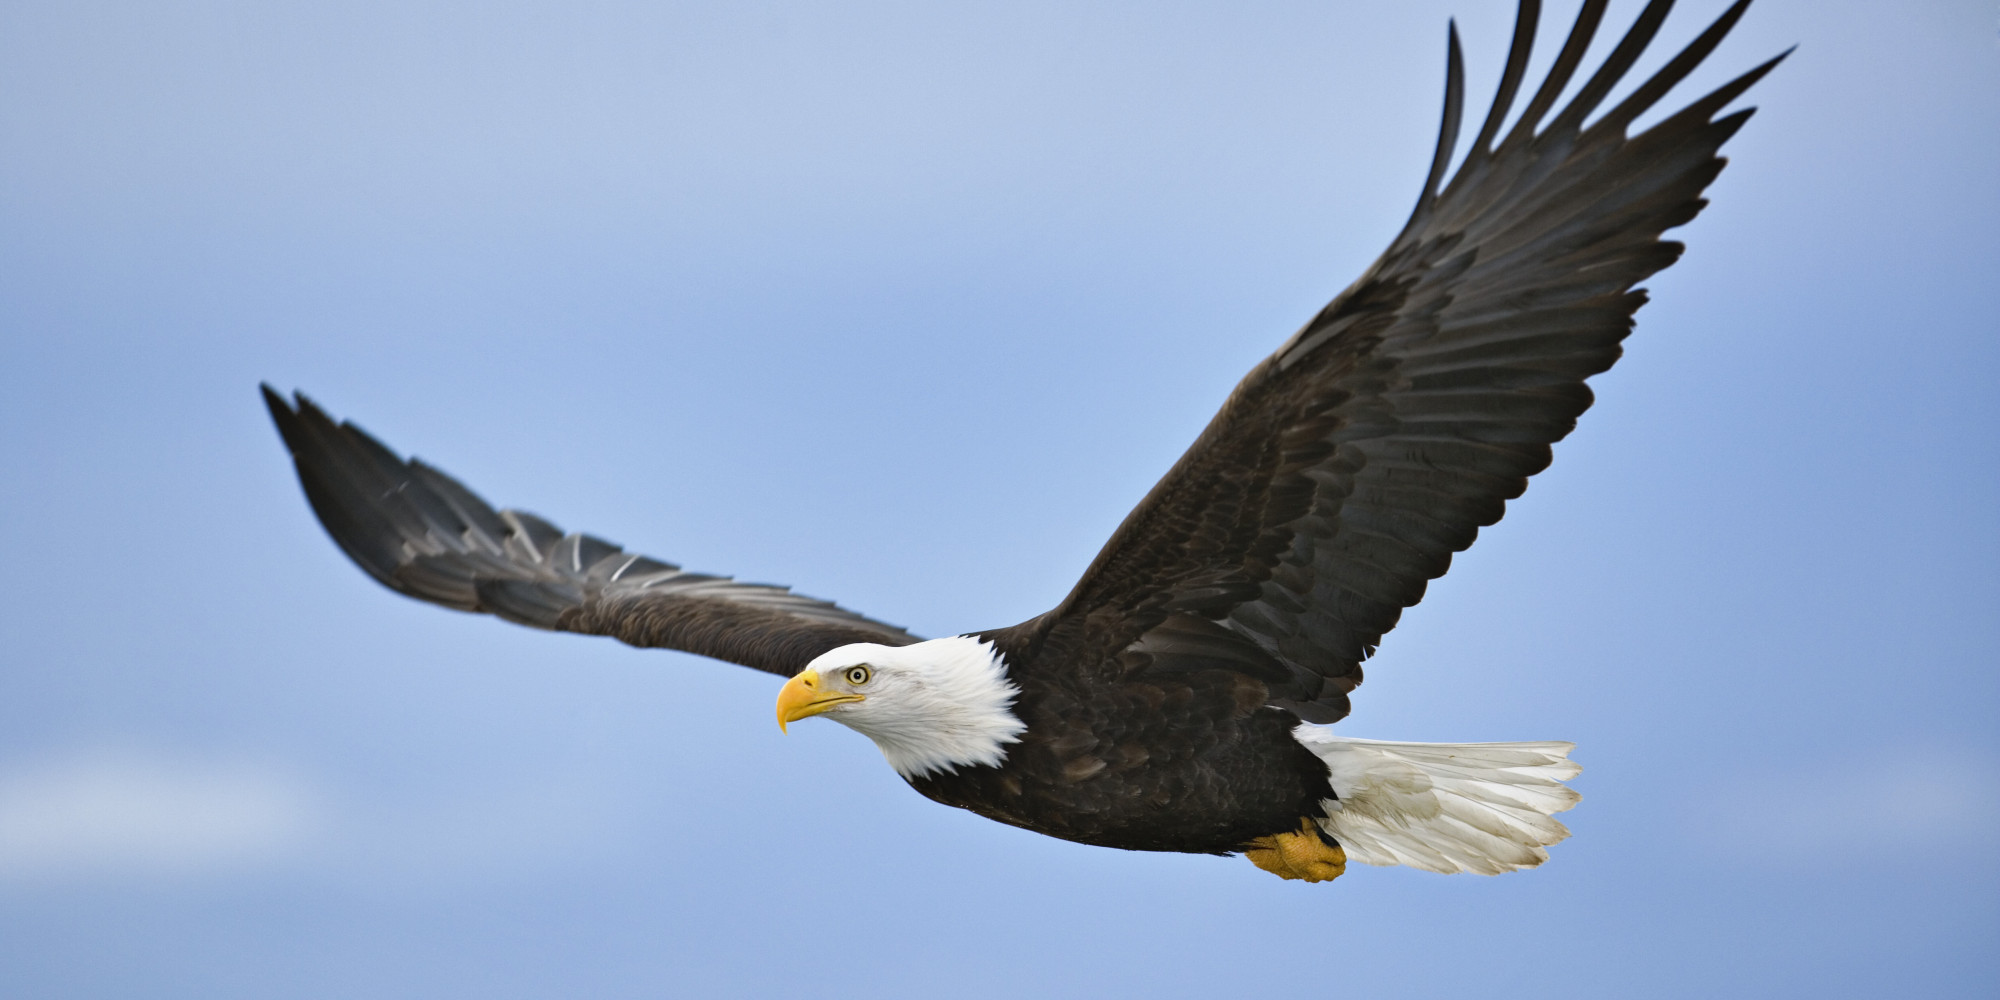 Adult Eagle Flying in the Sky 148.92 Kb